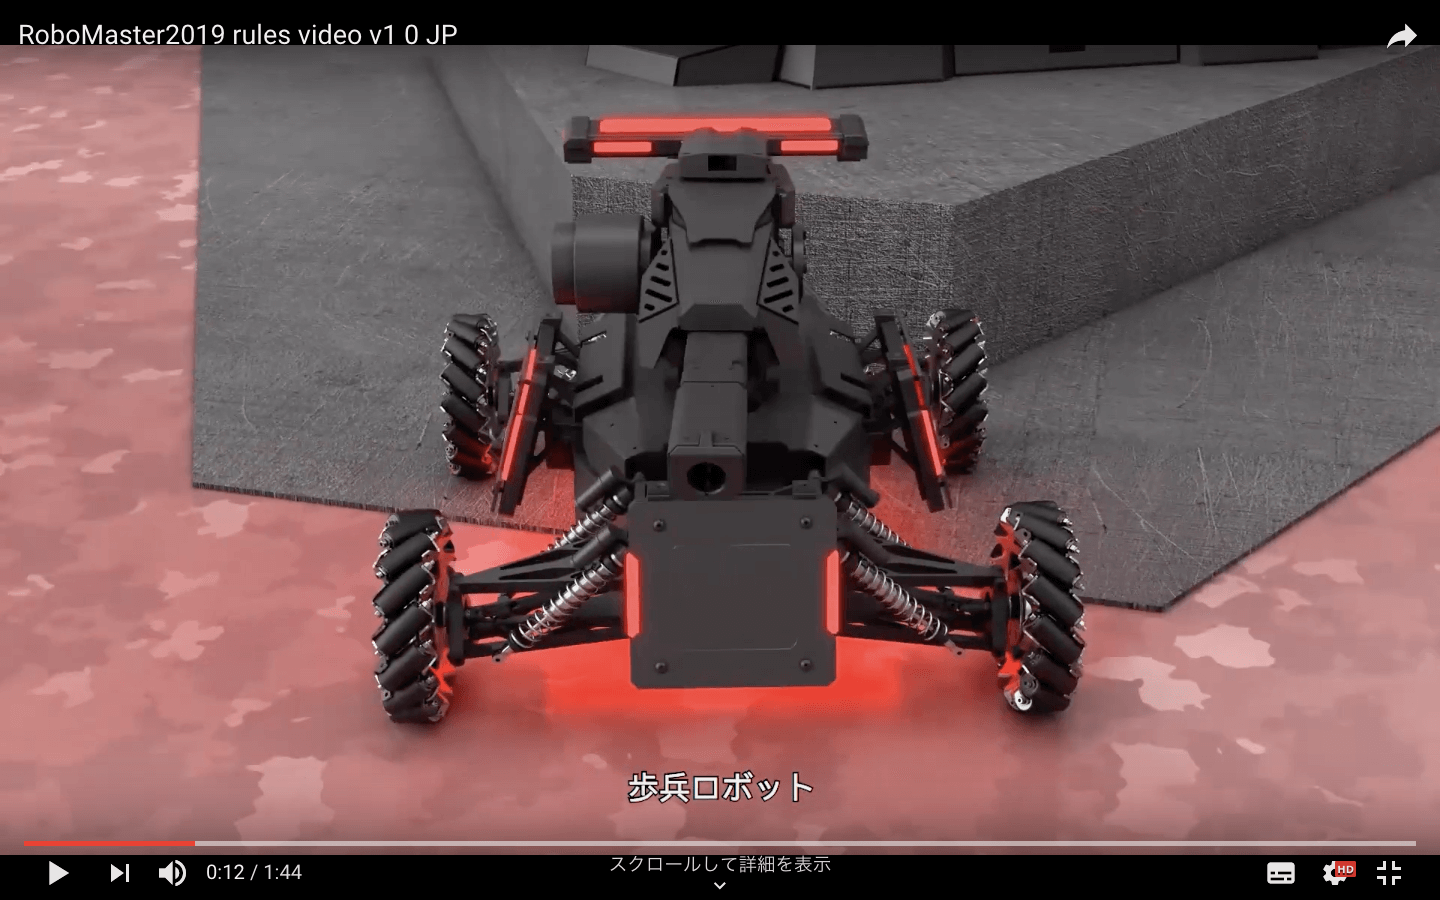 RoboMaster 2019 ルール紹介 歩兵ロボット